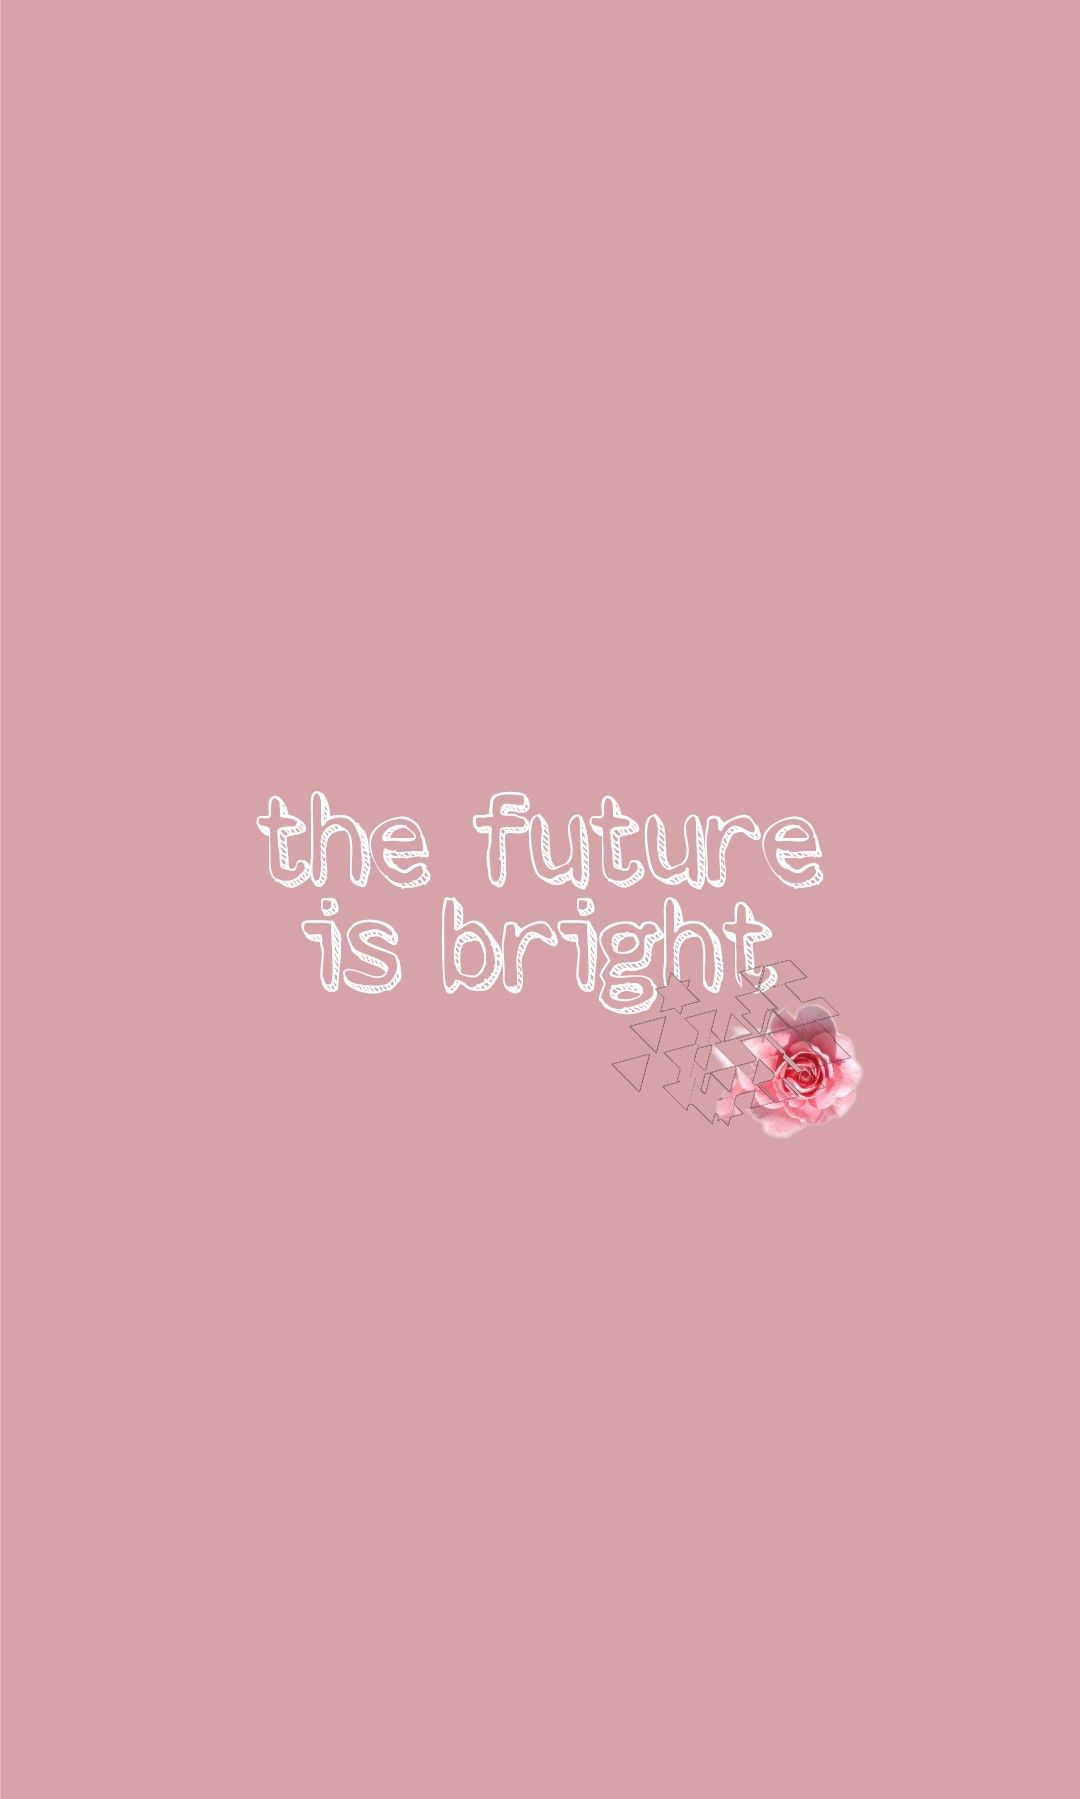 Pin By Fluffysttawberry On Wallpaper Bright Wallpaper Bright Future Iphone Wallpaper